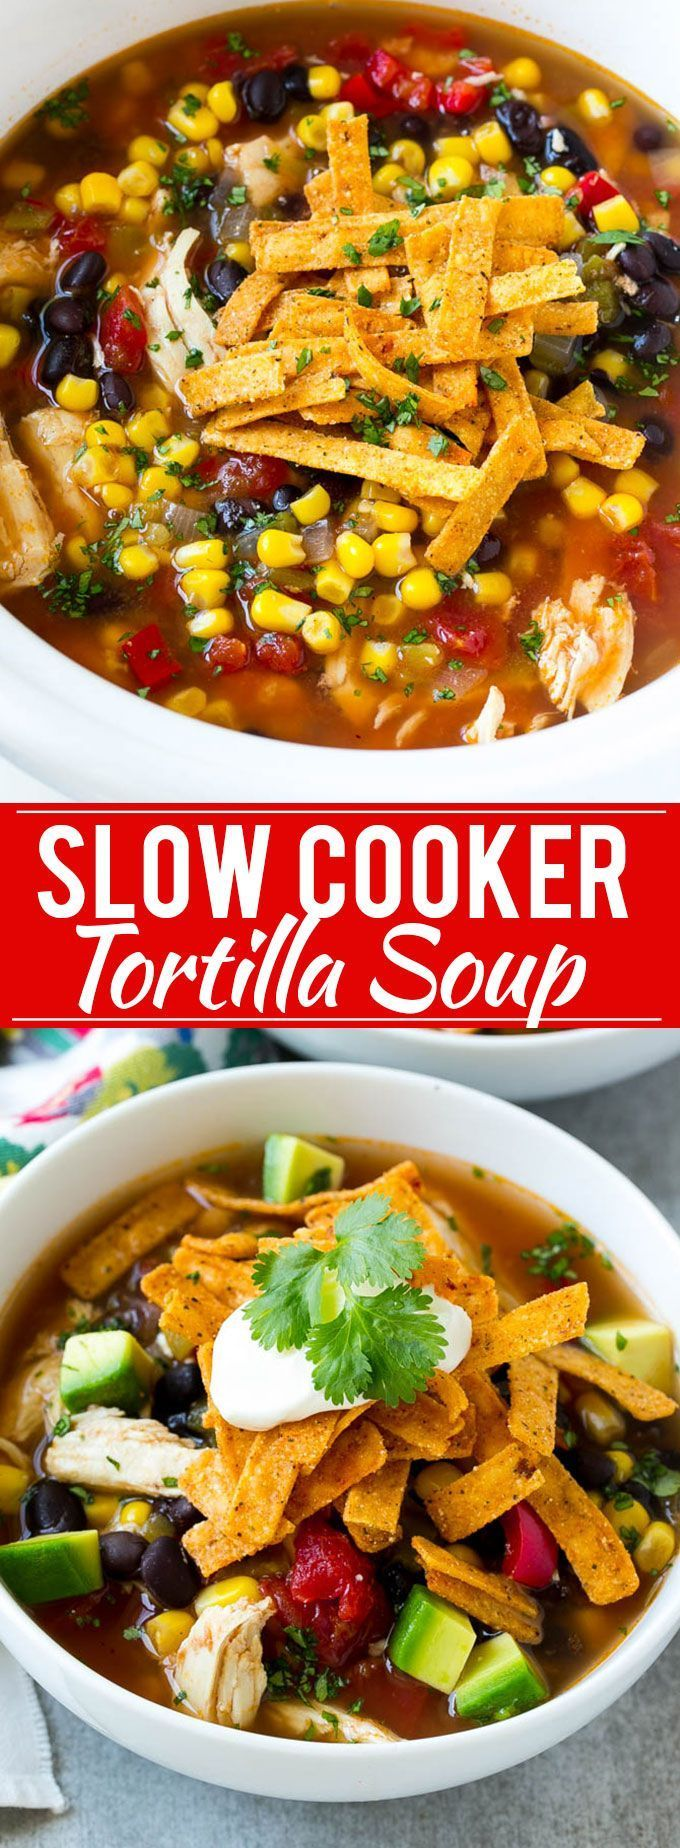 Slow Cooker Chicken Tortilla Soup Recipe  | Posted by: DebbieNet.com